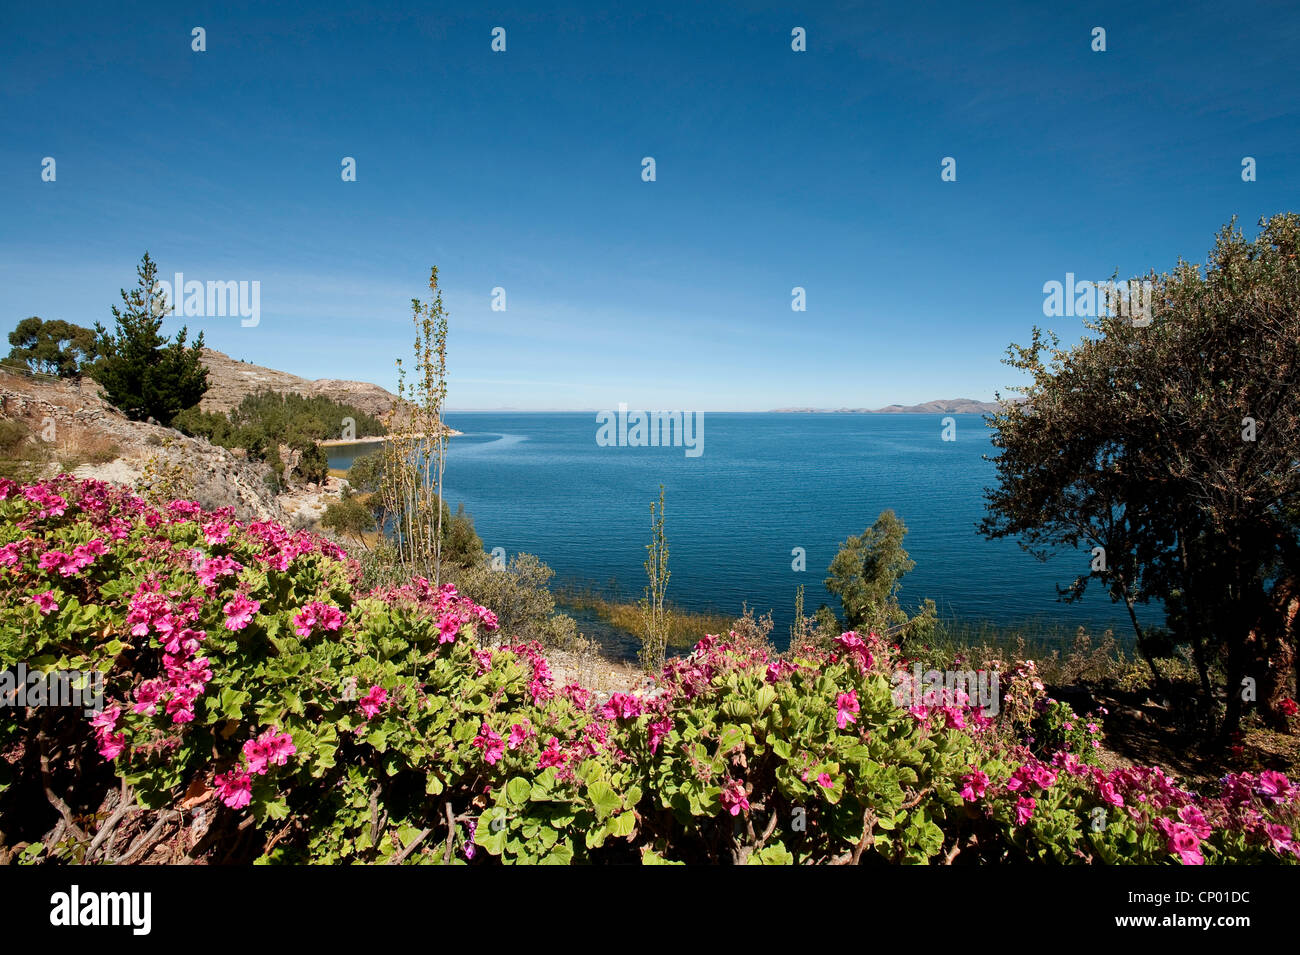 view from the blooming shore down the cliffs at Lake Titicaca, Peru, Taquile Island, Lake Titicaca - Stock Image